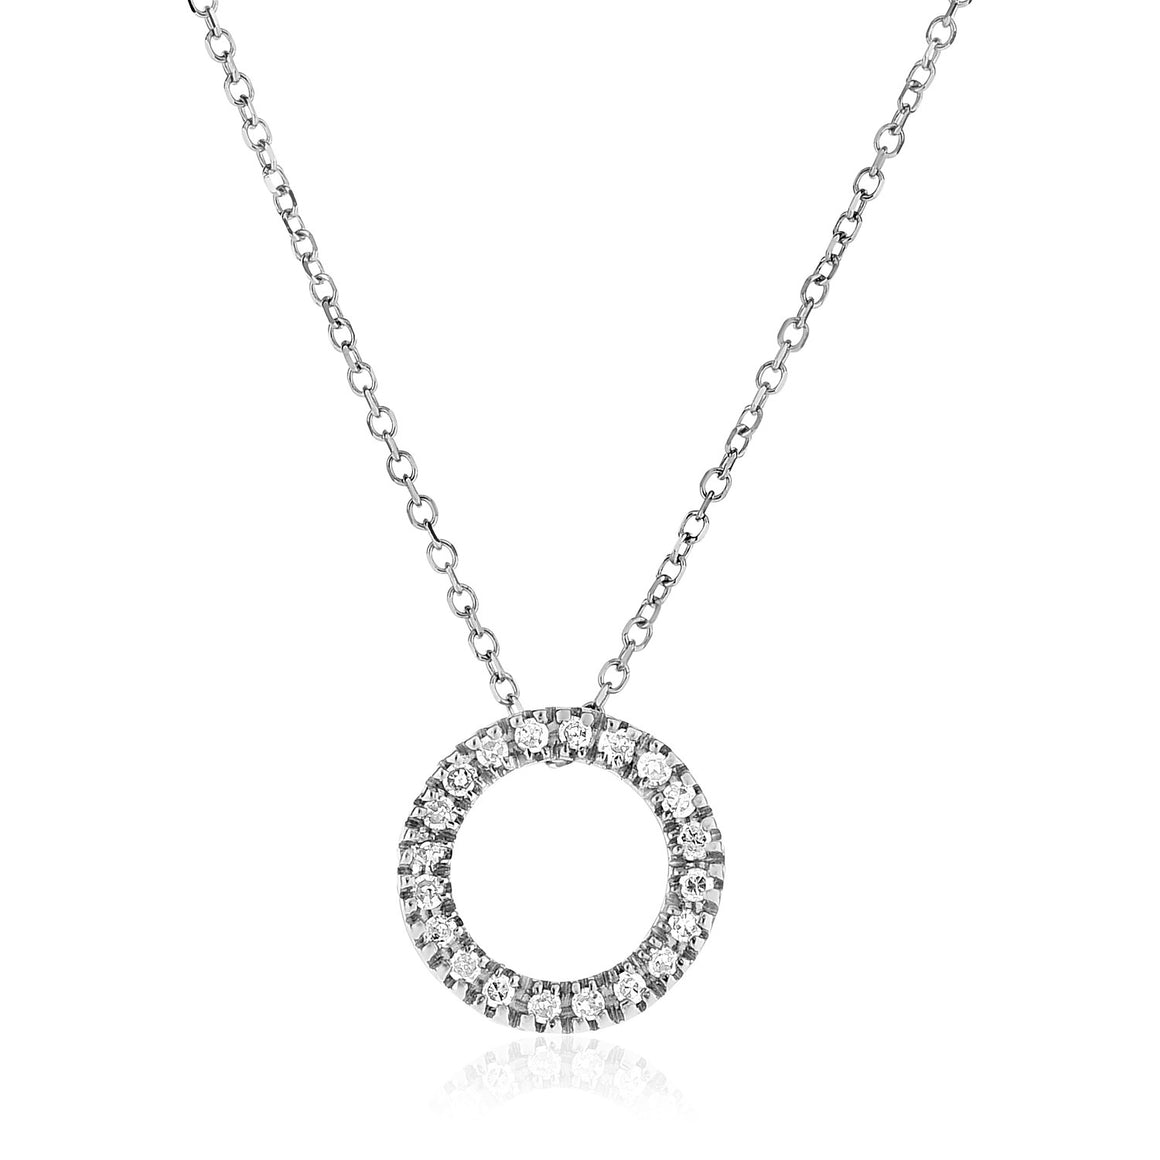 14k White Gold Necklace with Gold and Diamond Open Ring Pendant (1/10 cttw)